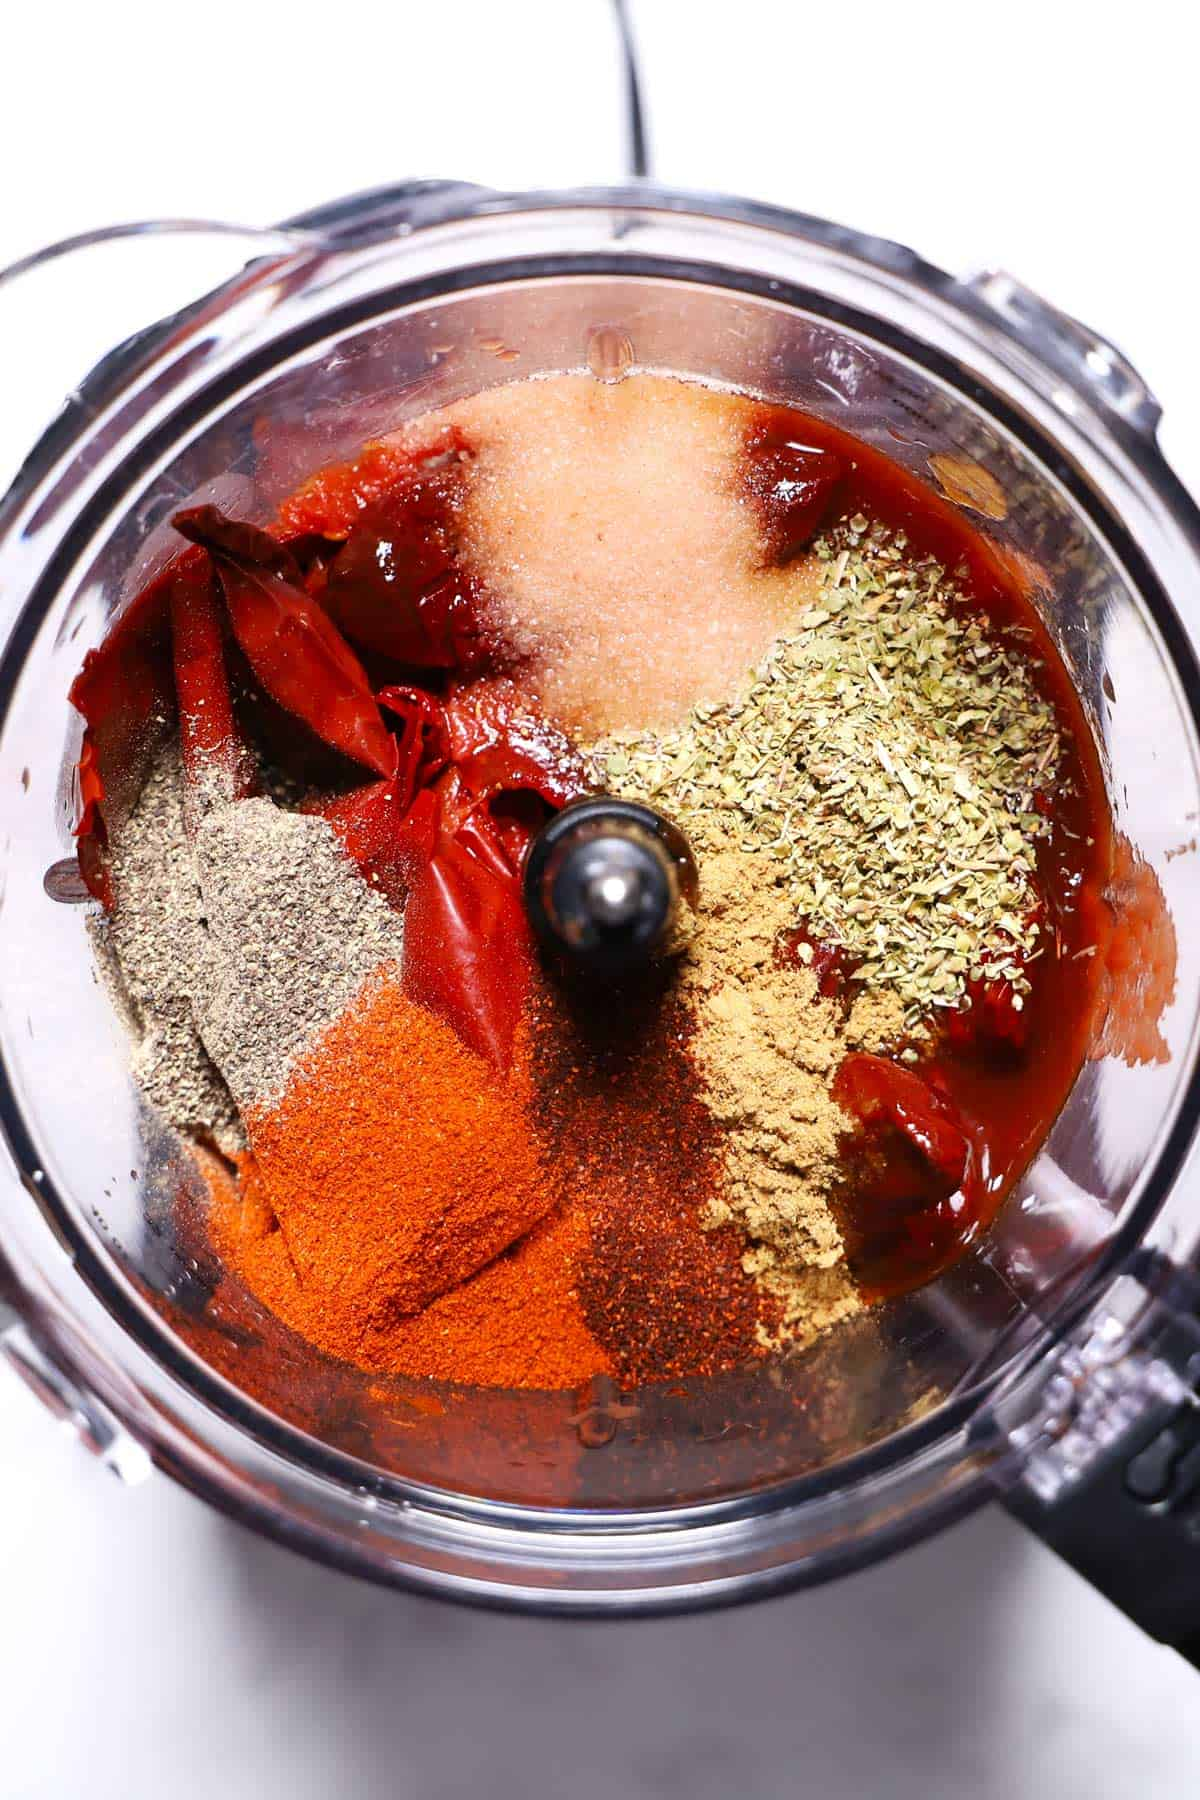 Birria sauce ingredients in a food processor.